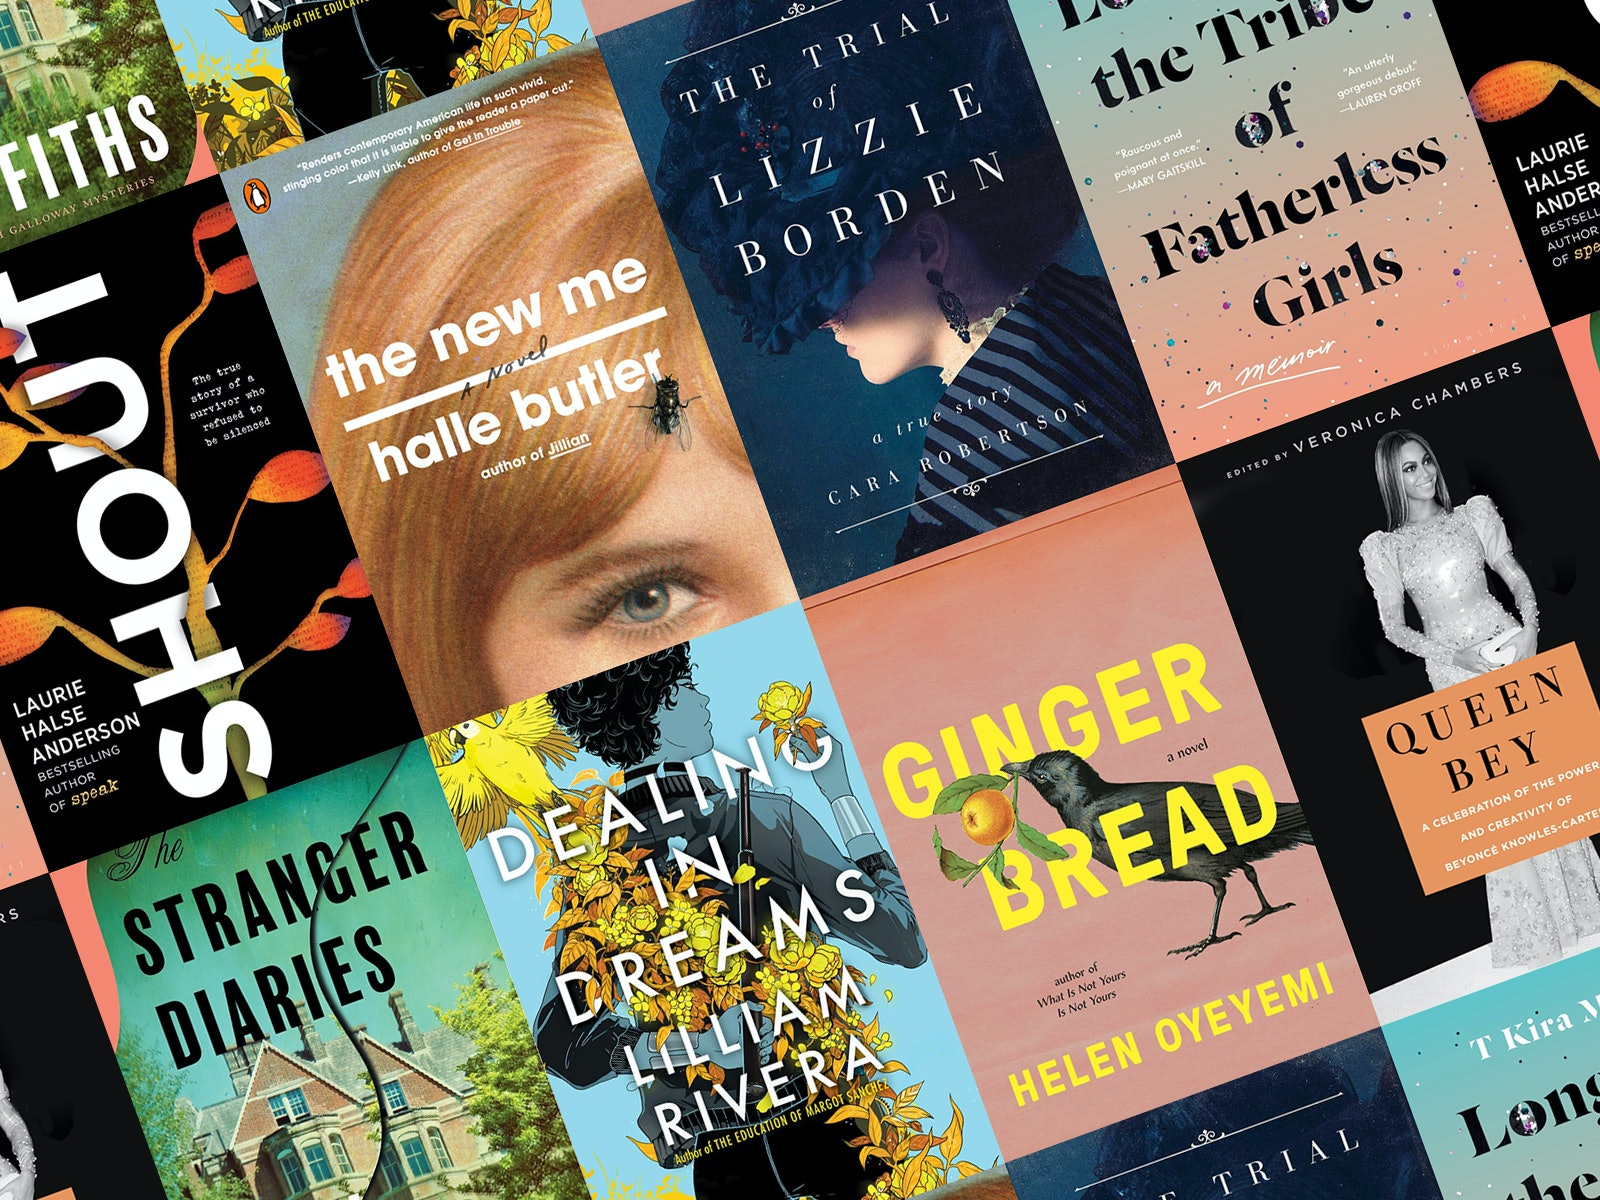 33 New Books Coming Out In March 2019 To Add To Your Spring